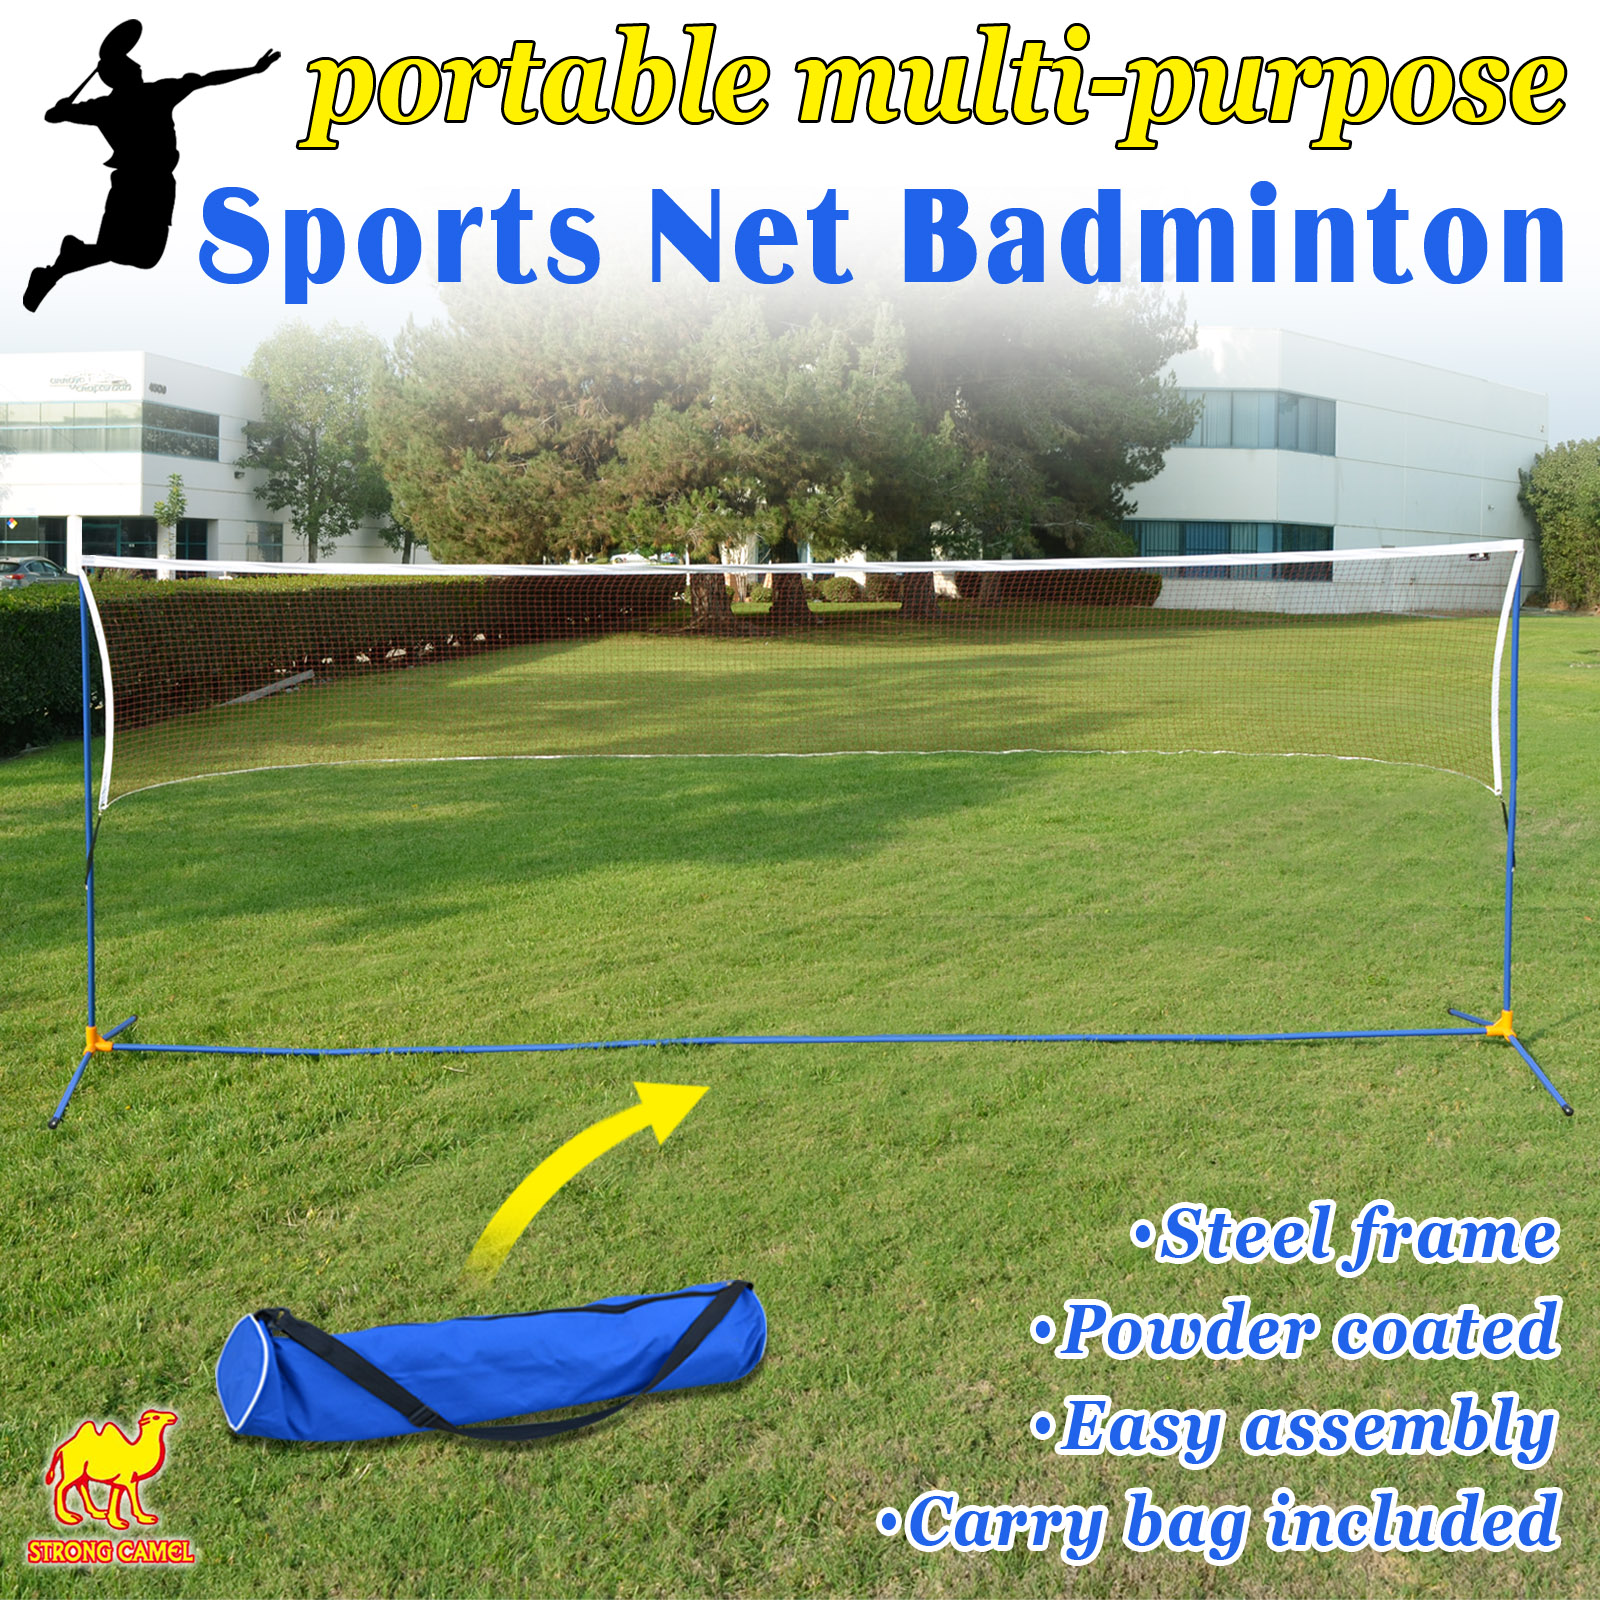 LARGE Volleyball Badminton Tennis Net Portable Training Beach with carrying bag STAND